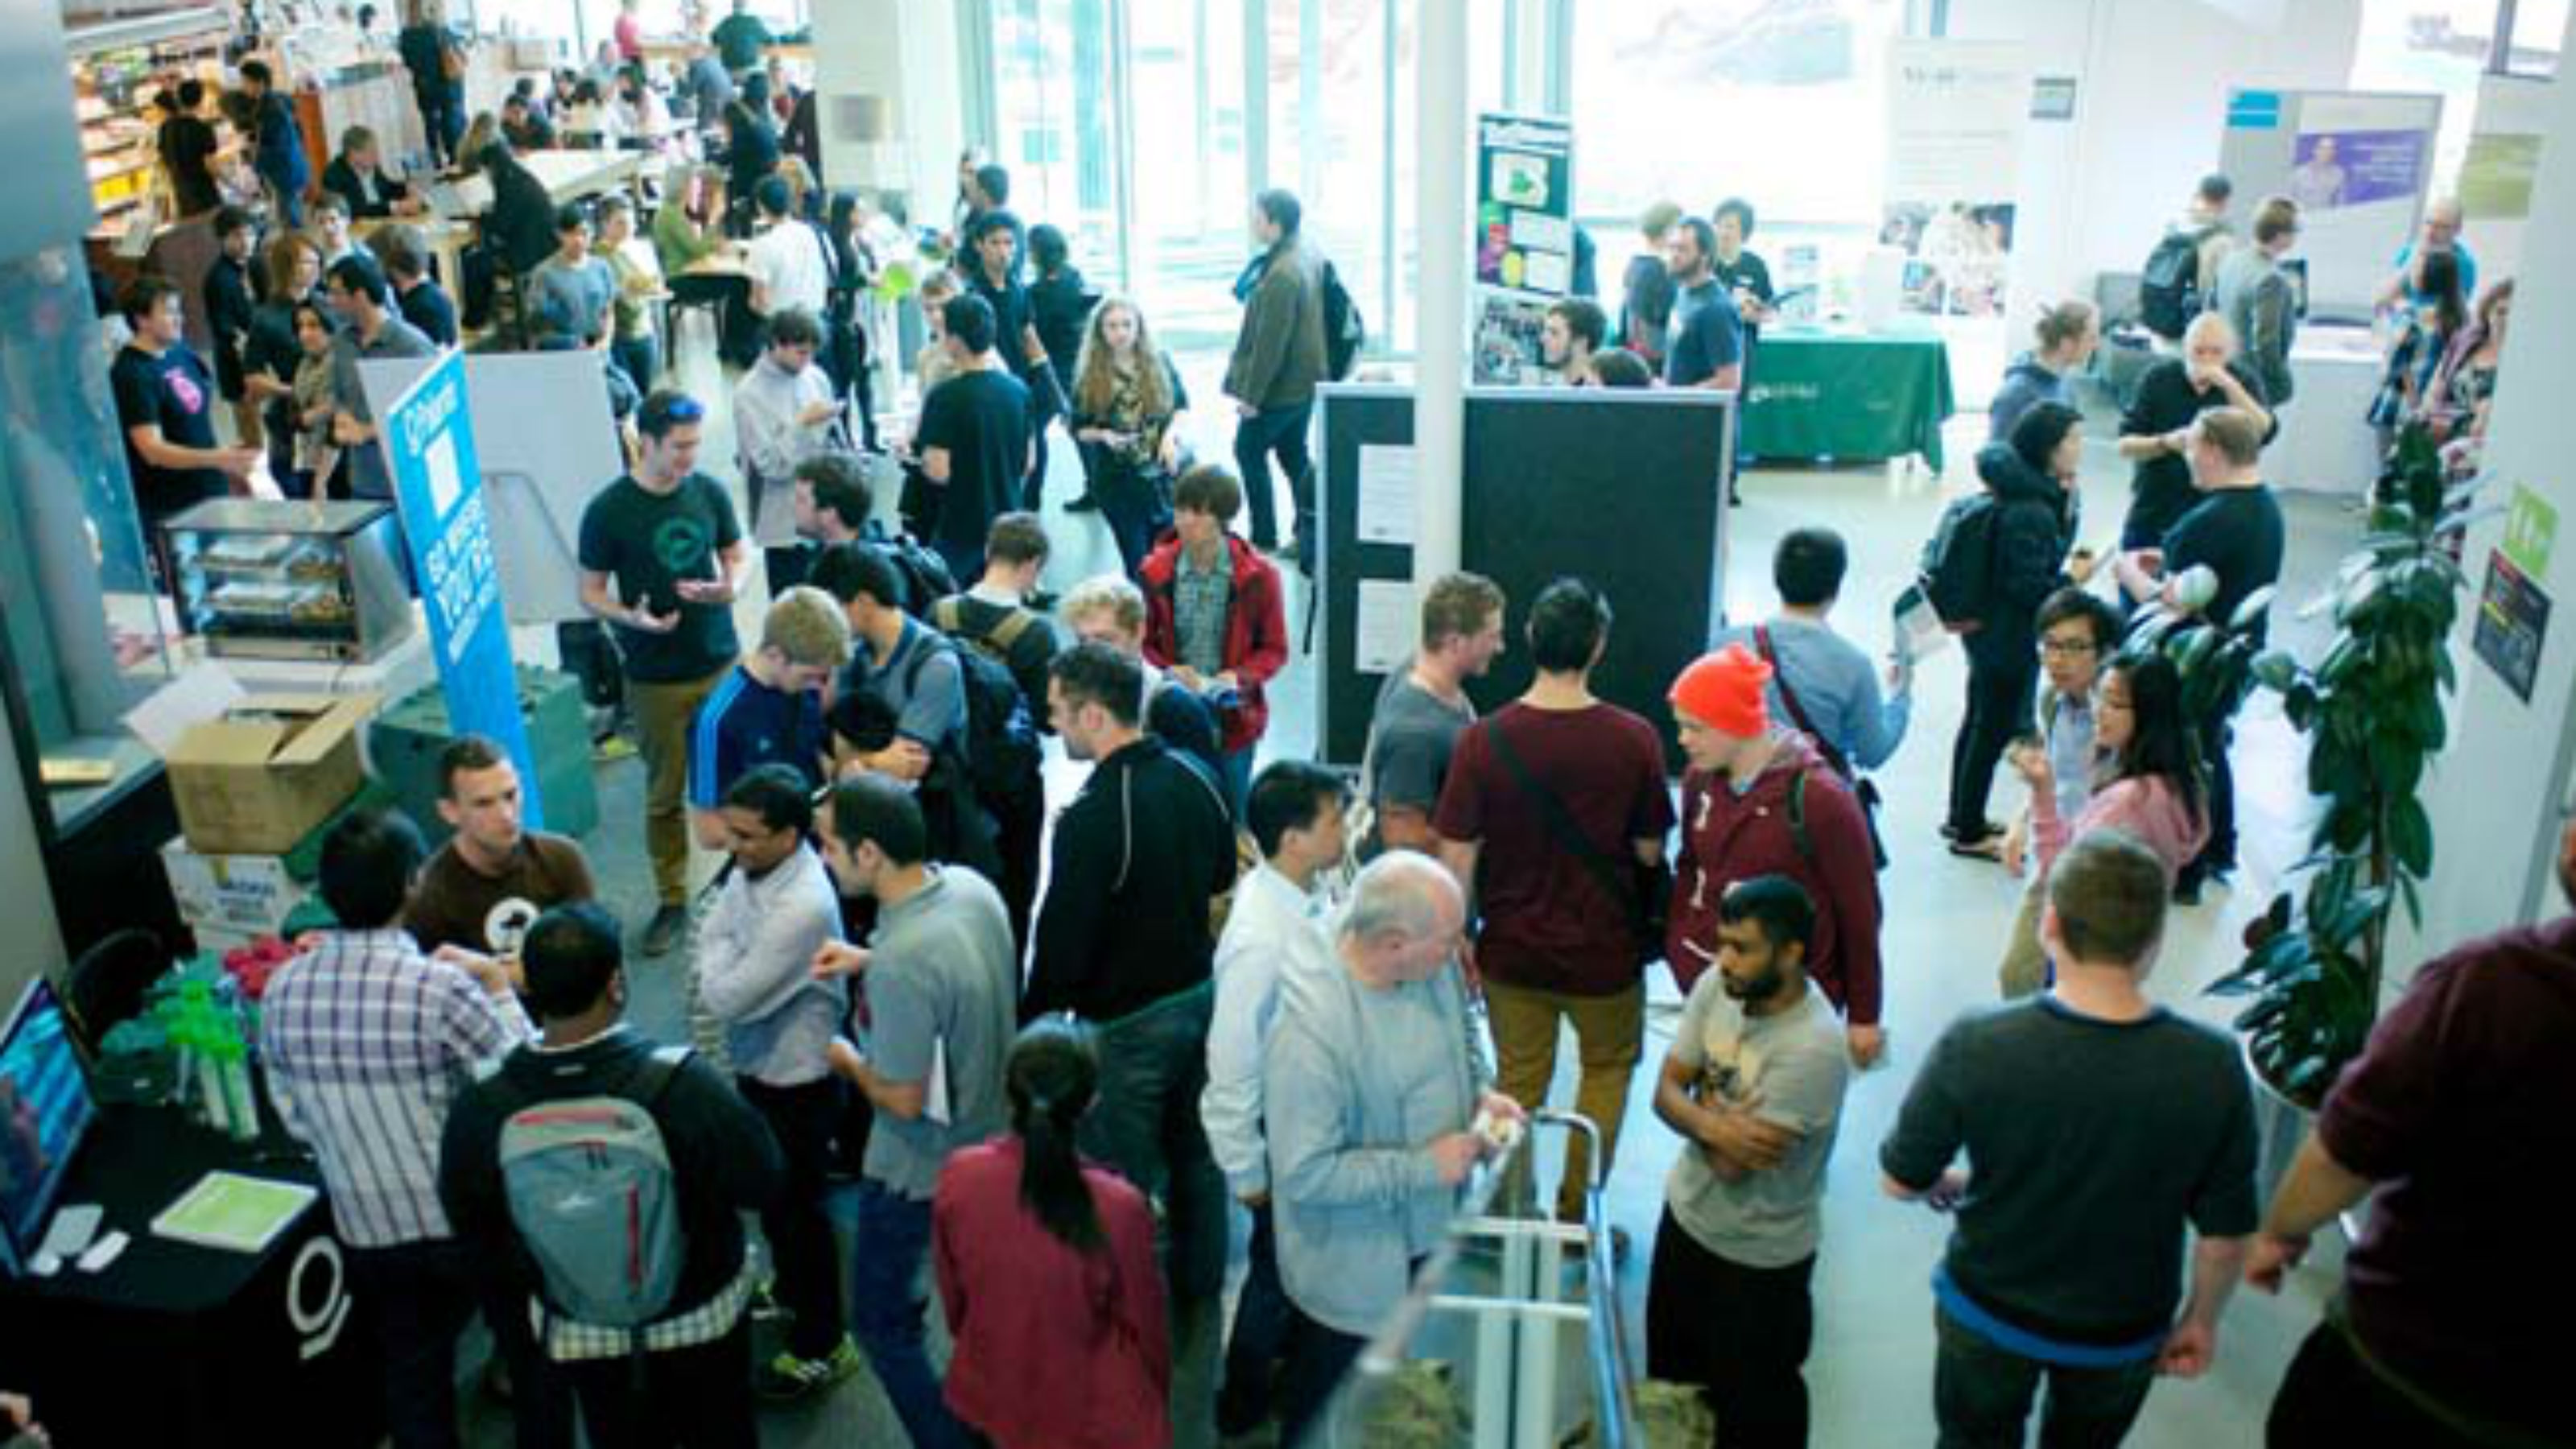 An image of many people in a large indoor room that has multiple banners and tables setup for an expo.